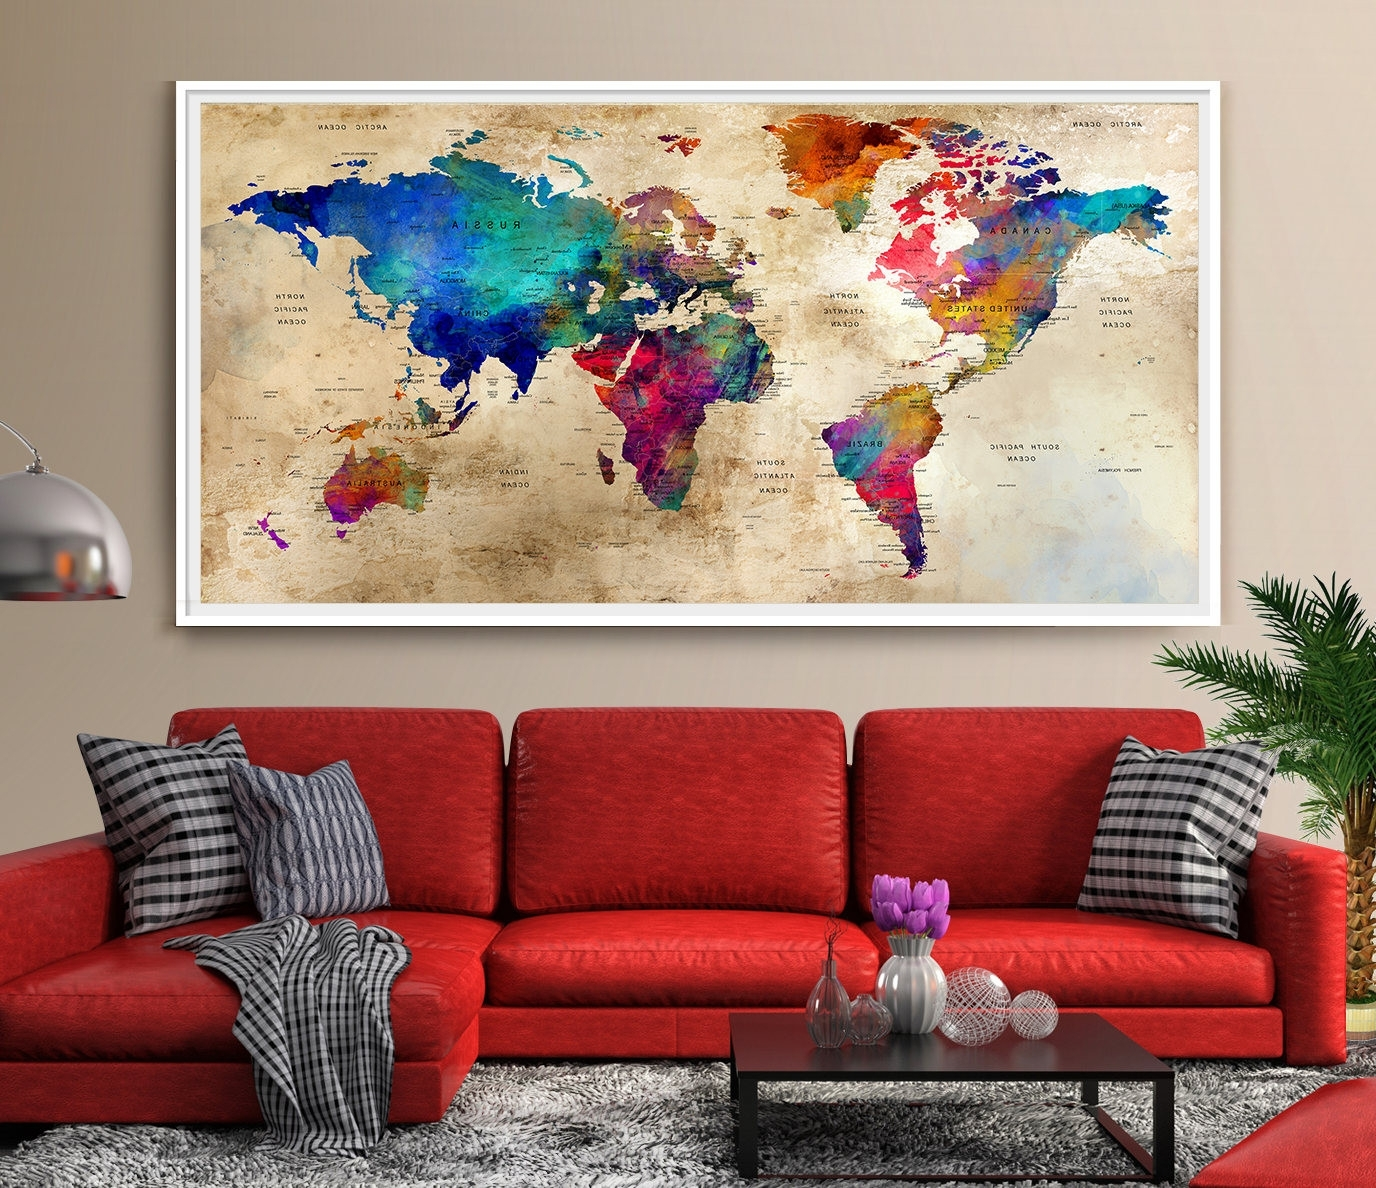 Widely Used Modern Wall Art Decors For Wall Decoration Colorful Art Paintings For Home Decor Living Design (View 12 of 15)